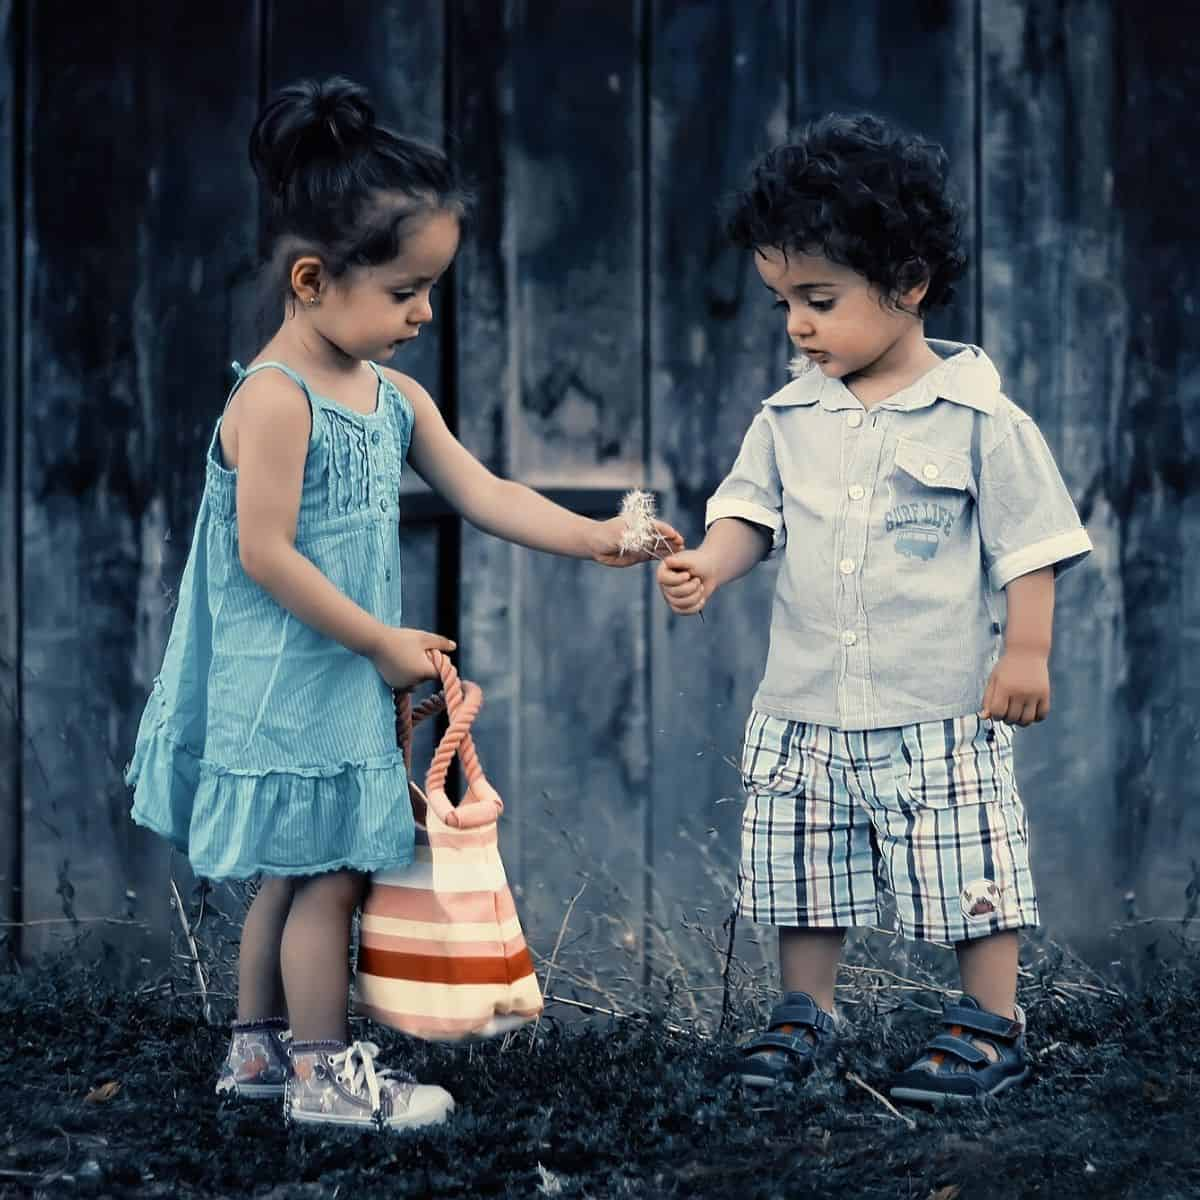 little girl handing dandelions to a little boy, in an act of empathy